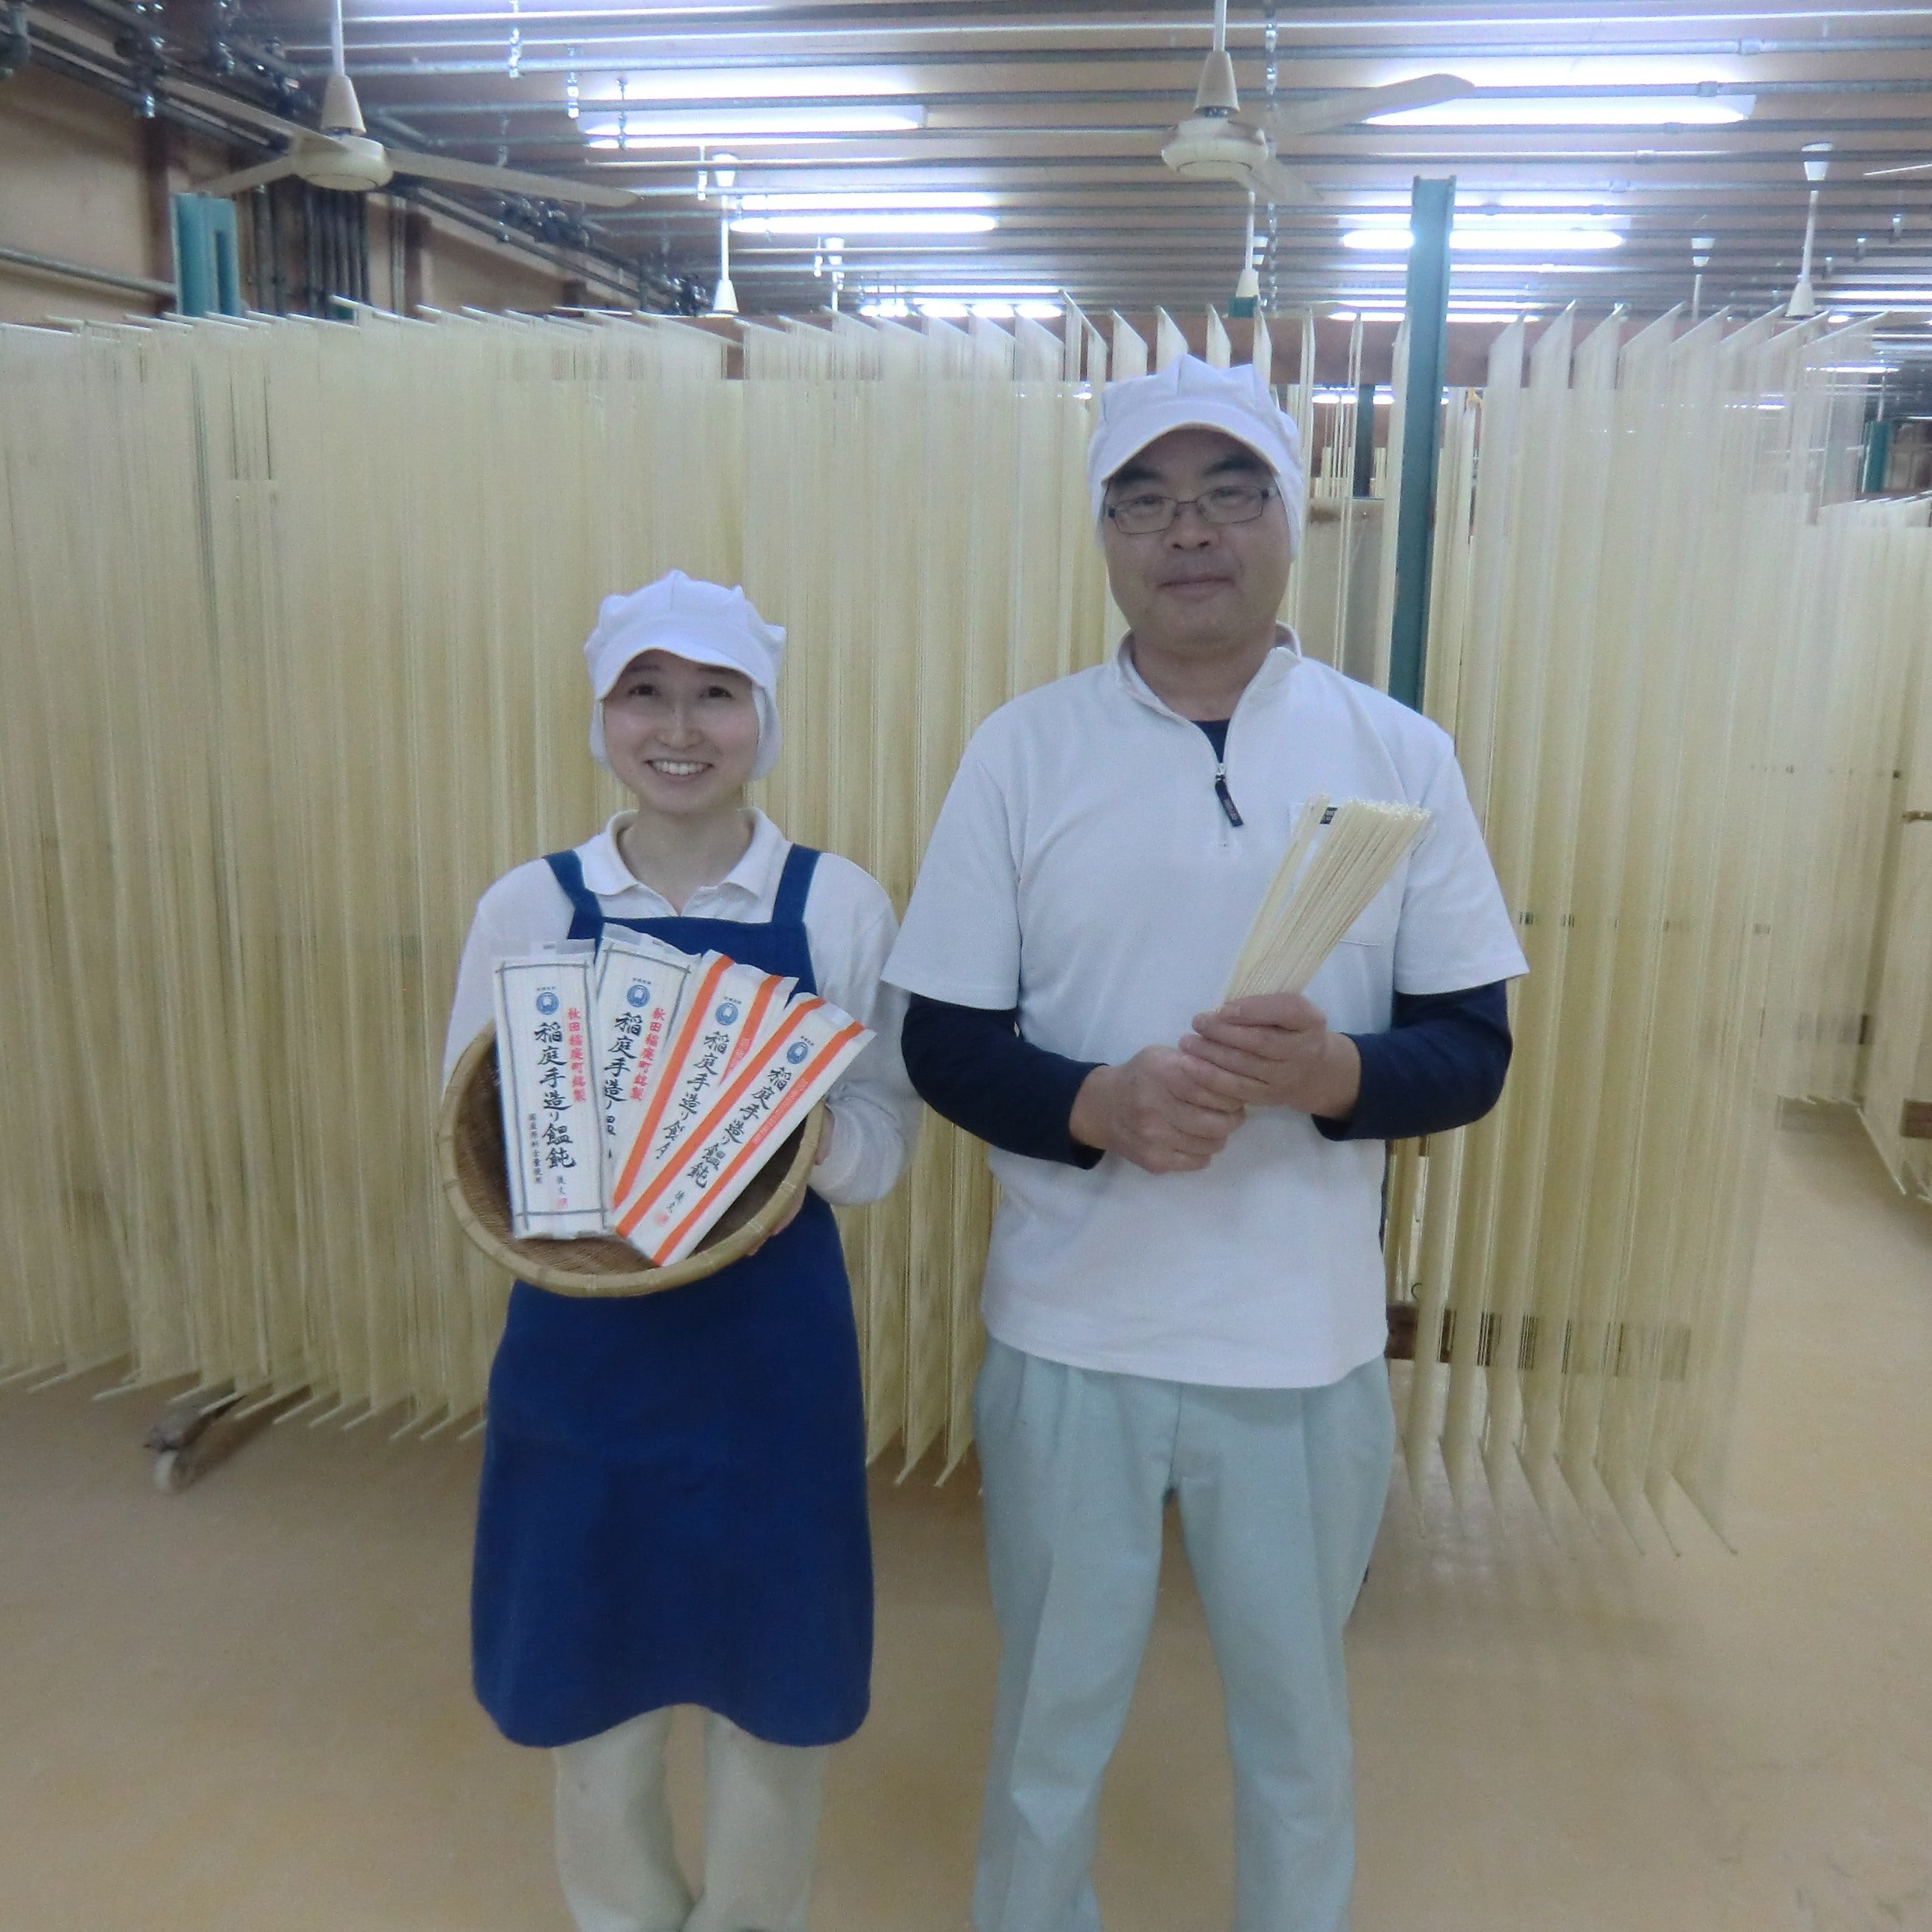 Two craftspeople holding noodles